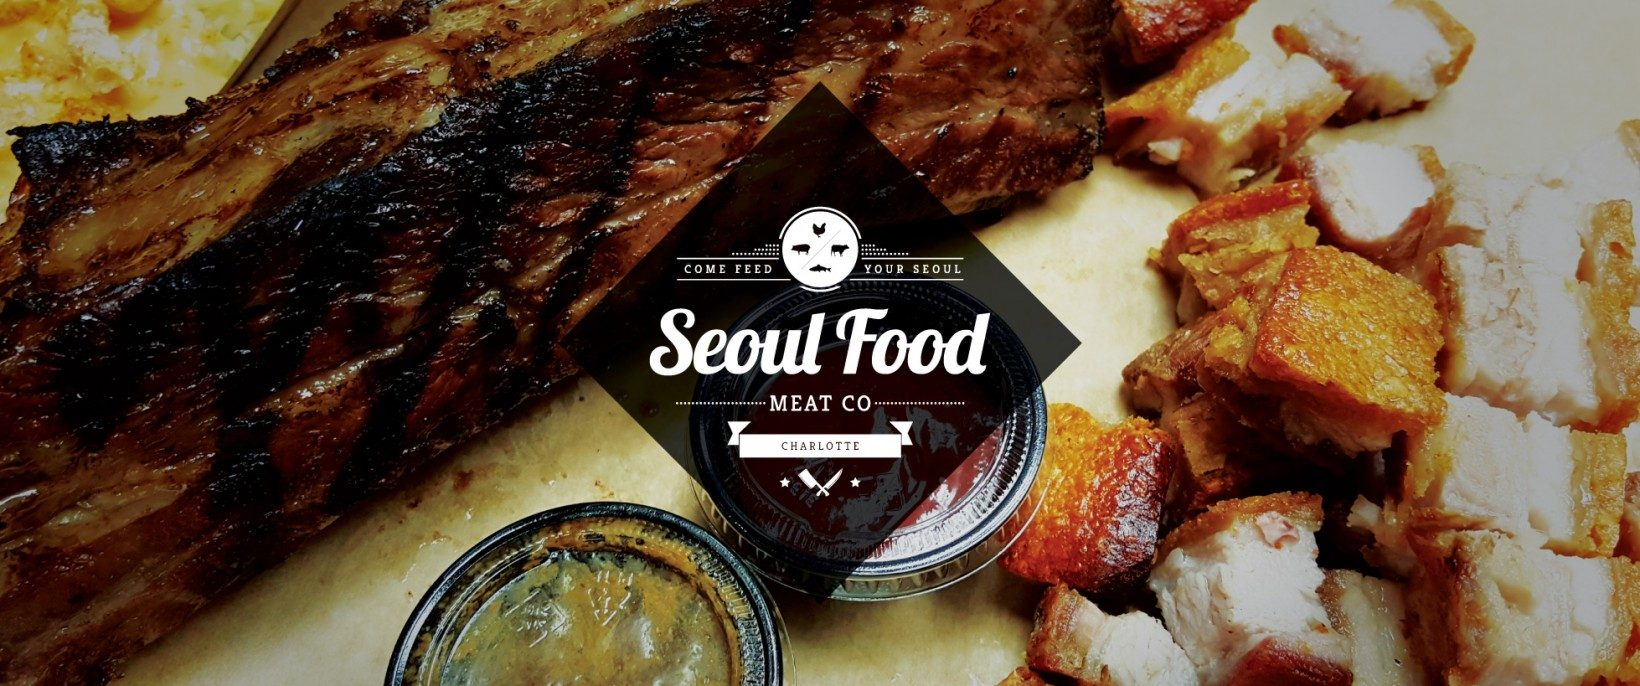 Seoul Food Meat Co Menu